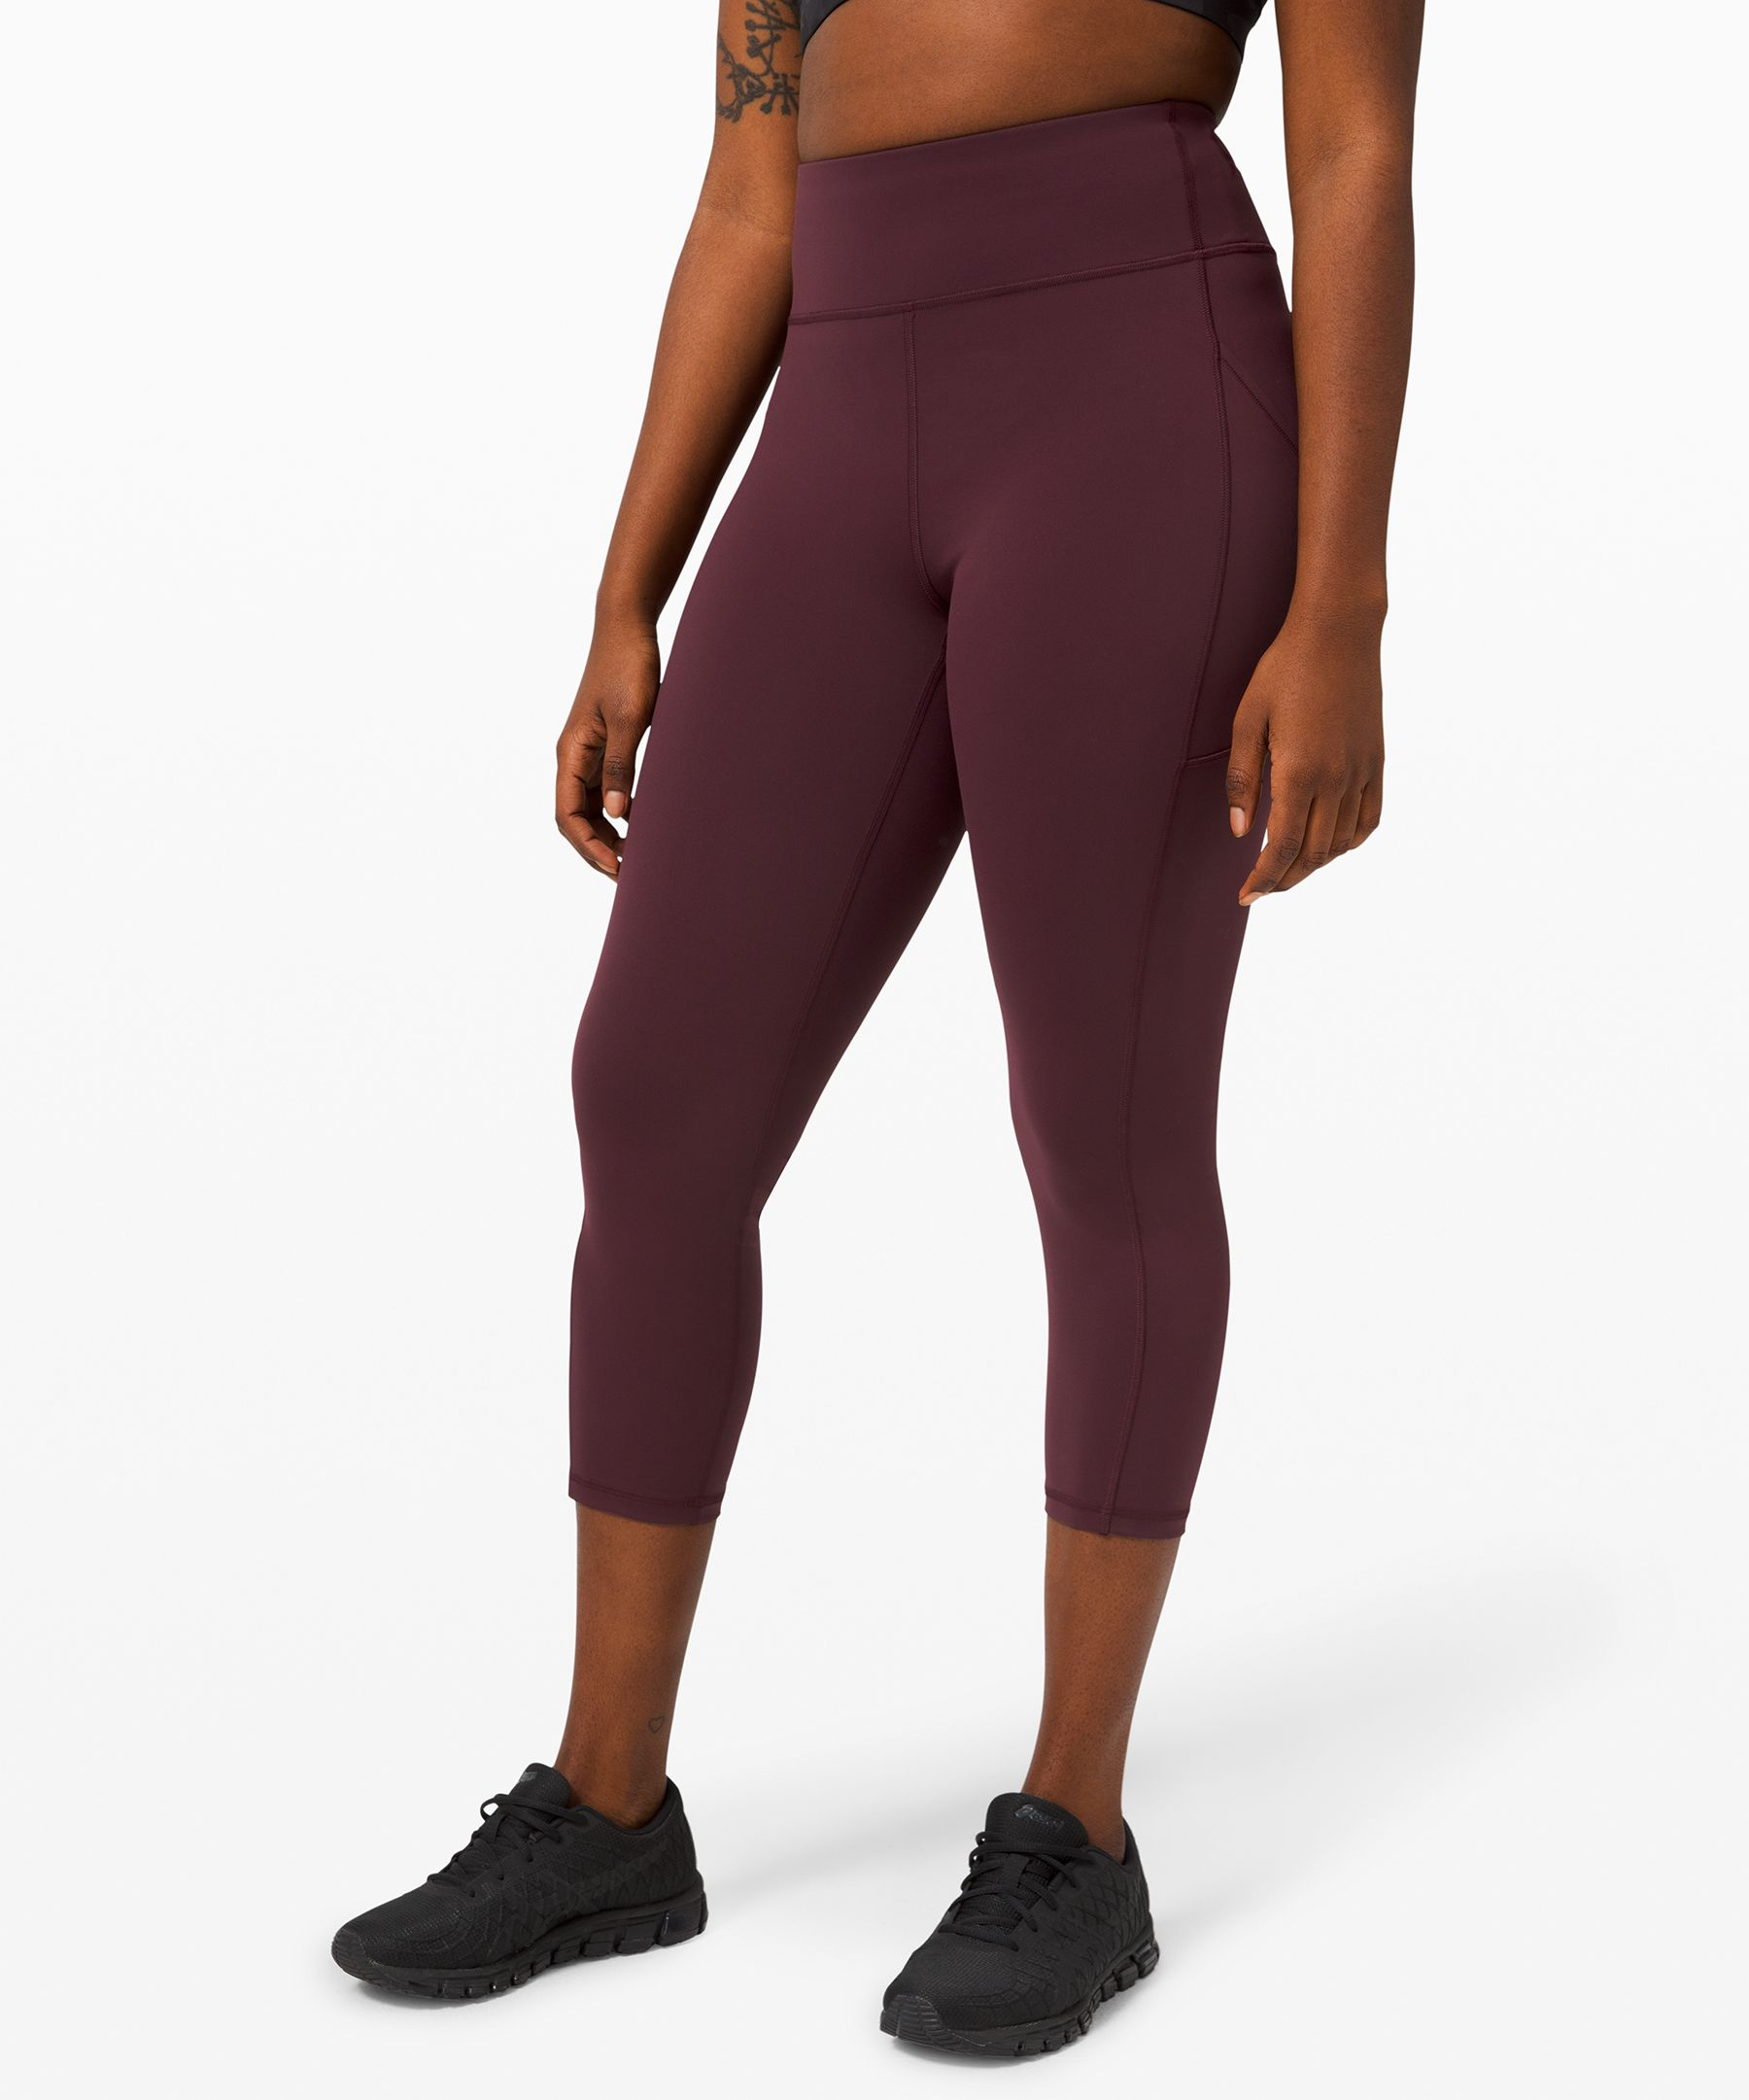 Focus on your strength, not your sweat. Powered by Everlux™, our fastest-drying fabric, the highly breathable Invigorate collection handles heat and sweat during intense workouts.